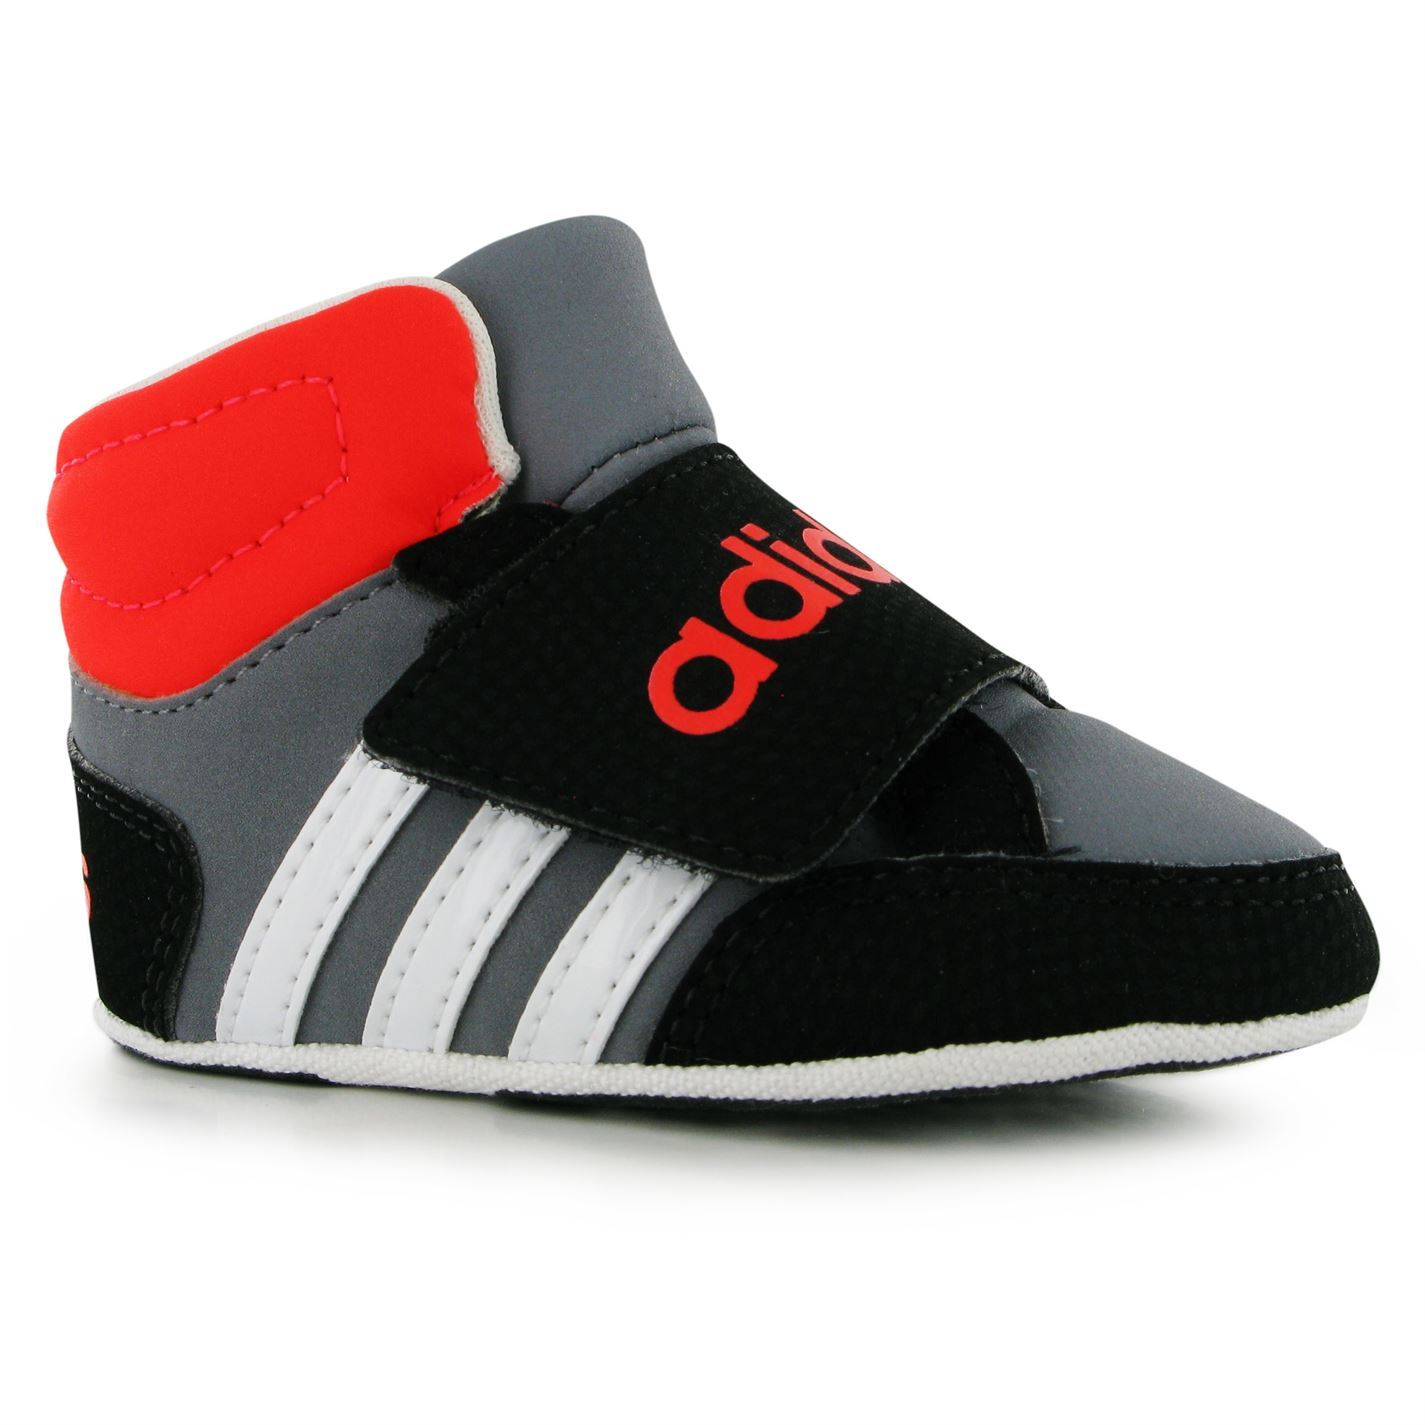 Adidas Hoops Trainers Crib Shoes Infant Baby Gry Wht Red